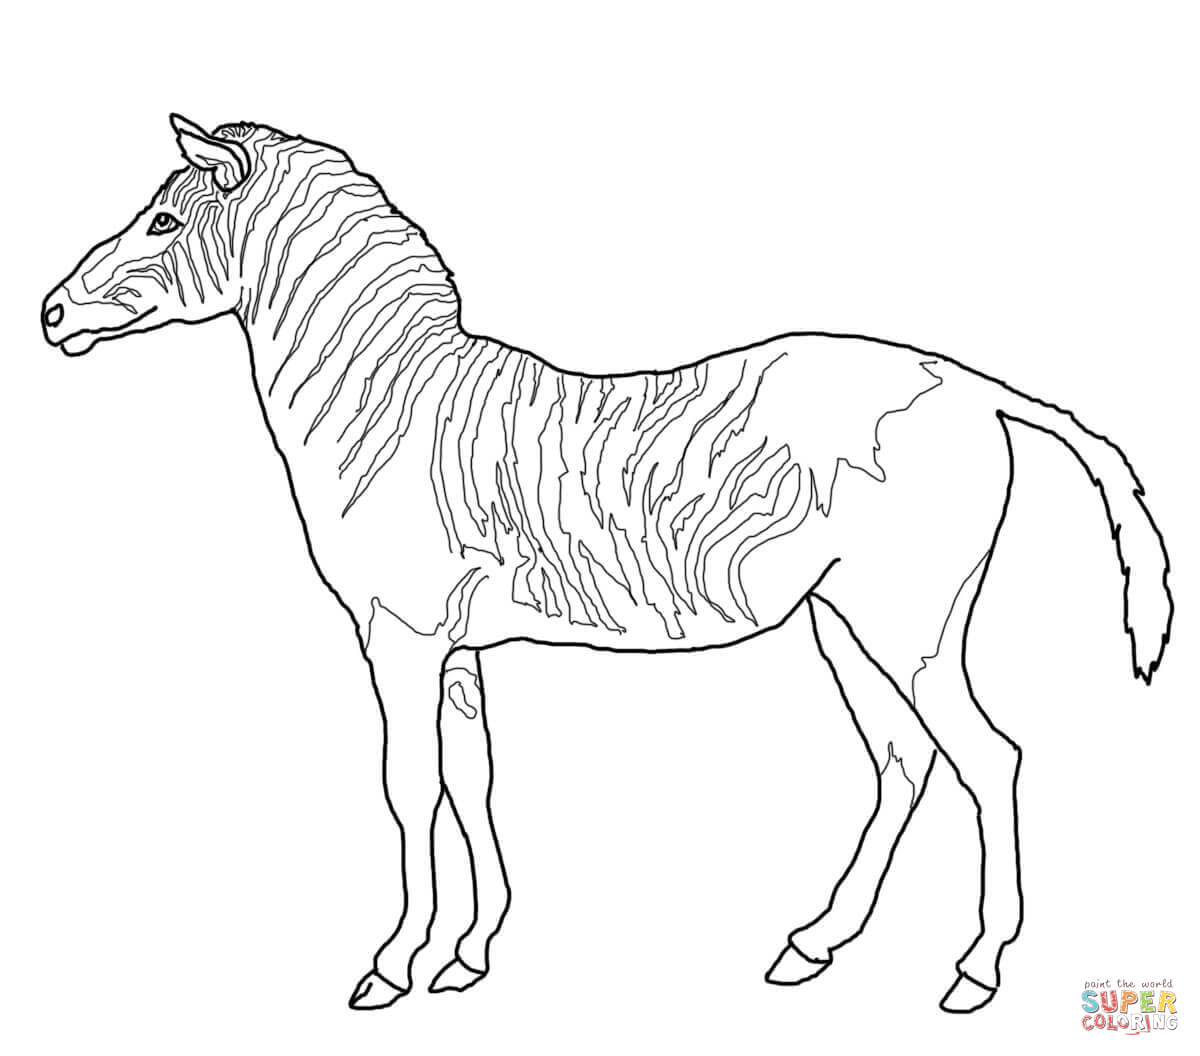 Zebra Coloring Pages Printable At Getdrawings Com Free For